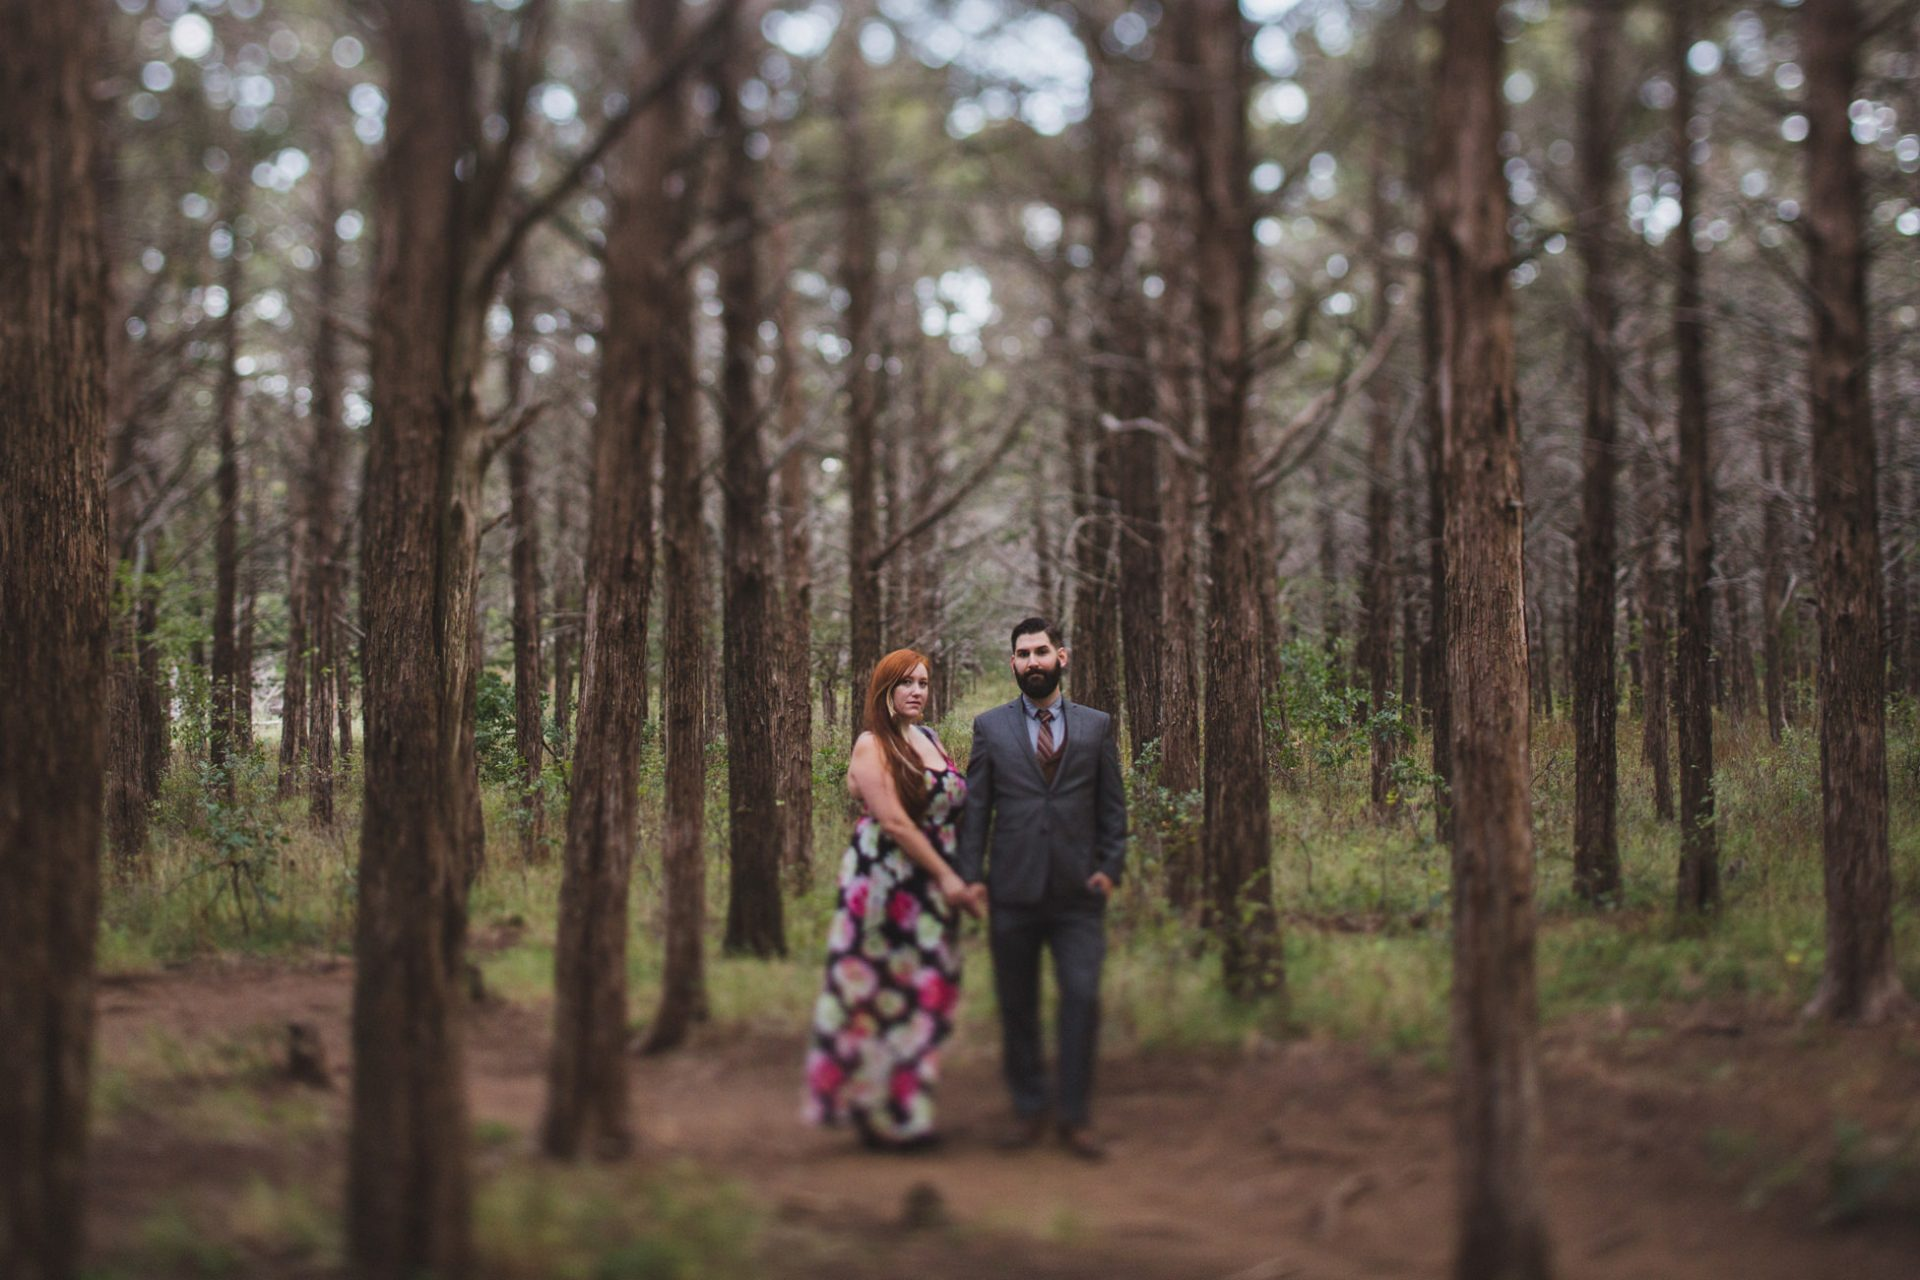 best-top-los-angeles-oklahoma-destination-engagement-photographer-hipster-modern-quirky-editorial-romantic-epic-6-parallel-forrest-